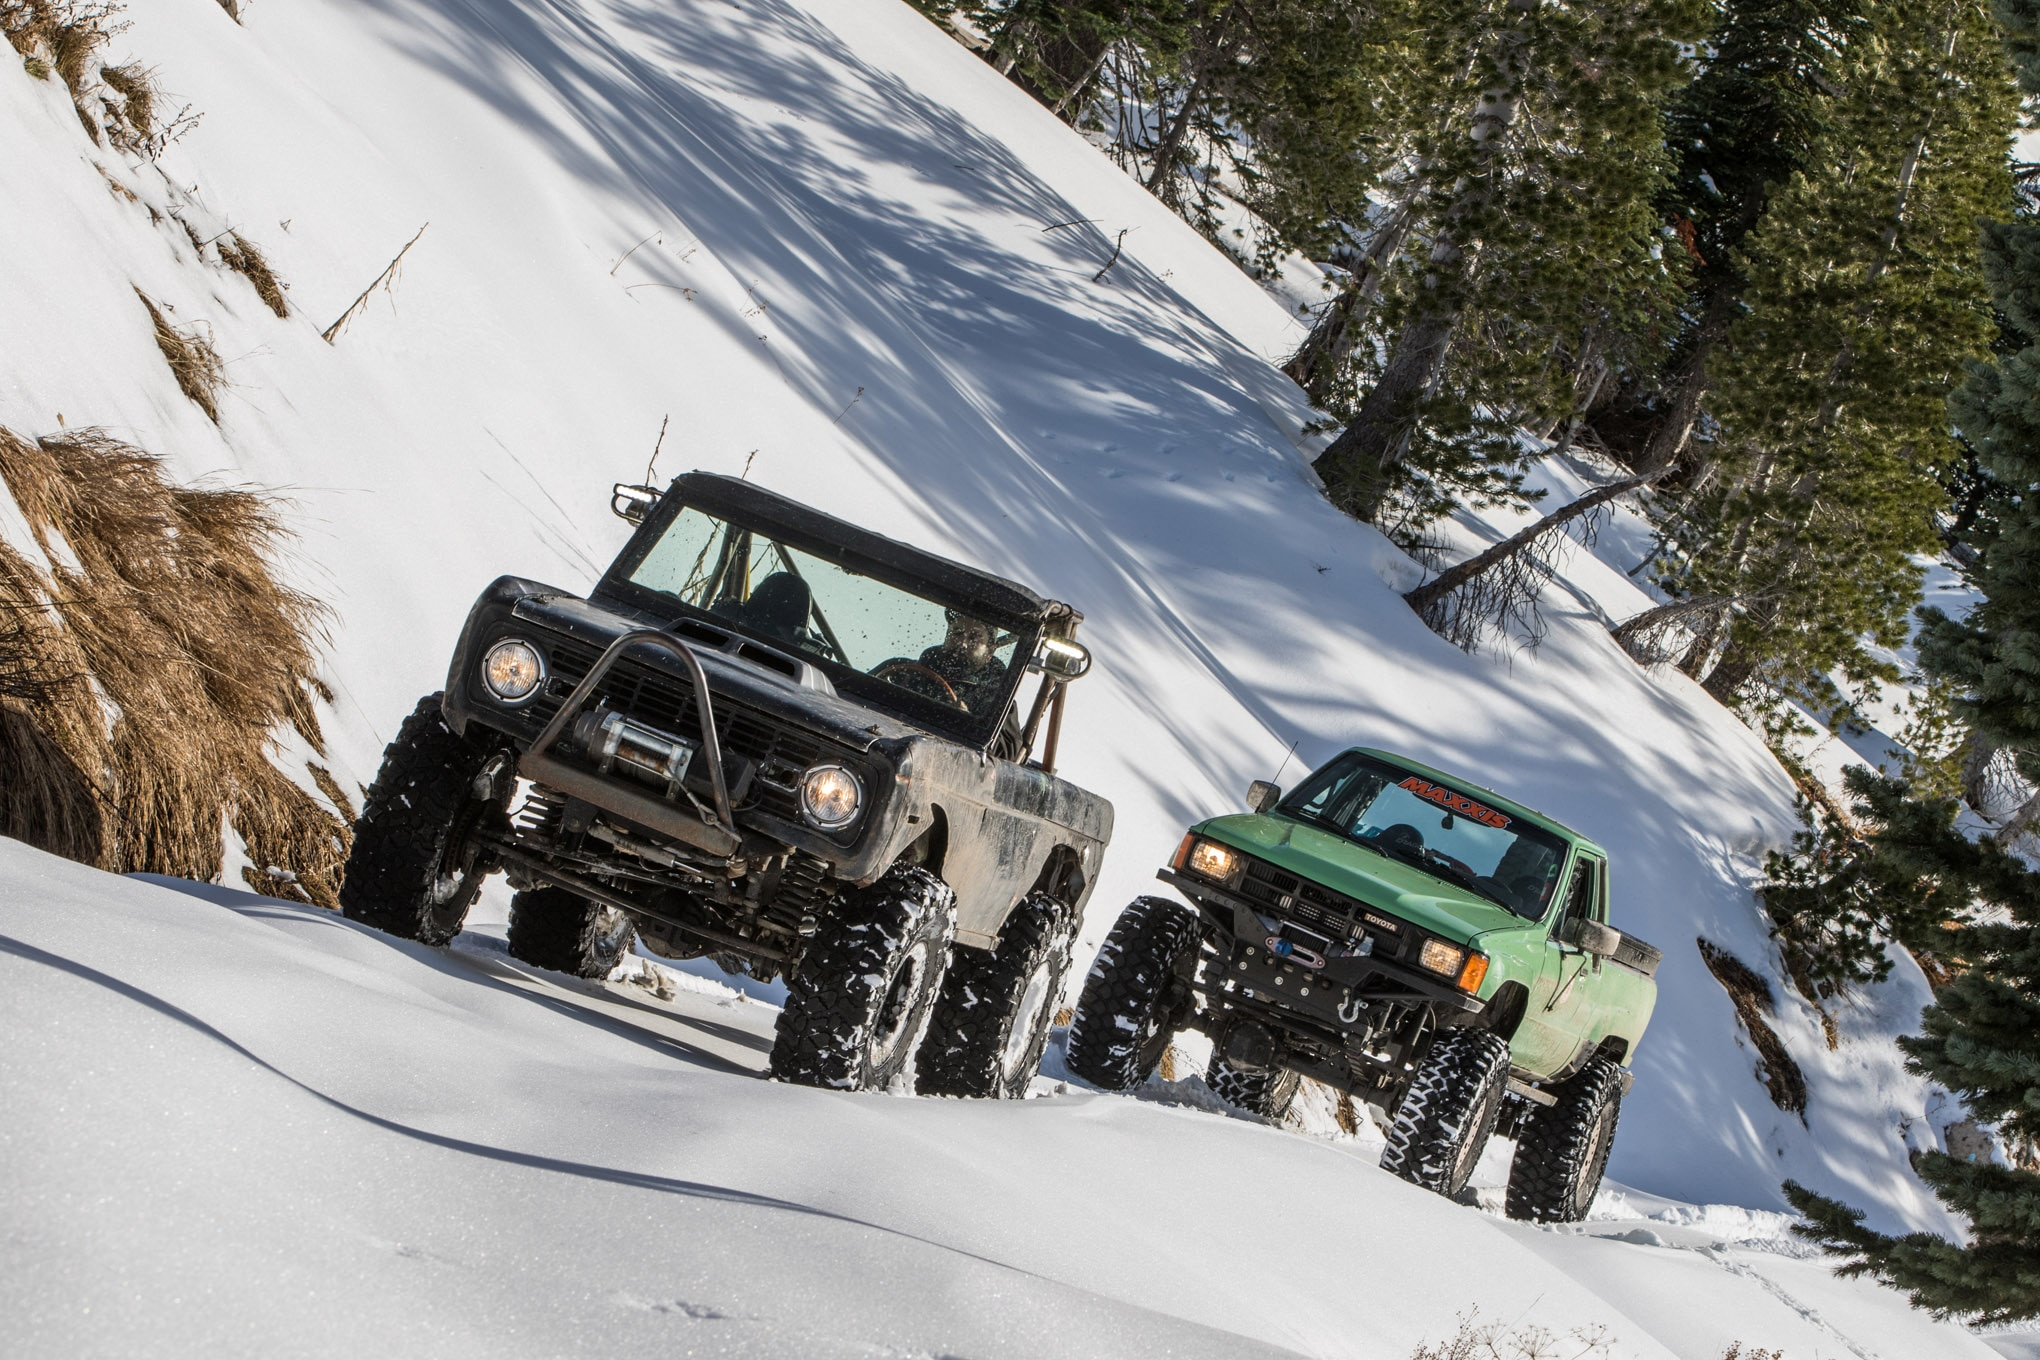 Don't have a top? That doesn't have to stop you from snow wheeling. Doors help trap heat, seated heats take the edge off, and Summit Racing Equipment offers a variety of small heaters designed for hot rods. A blanket around your passenger, or a dog on their lap, can go a long way to keeping them warm, too.